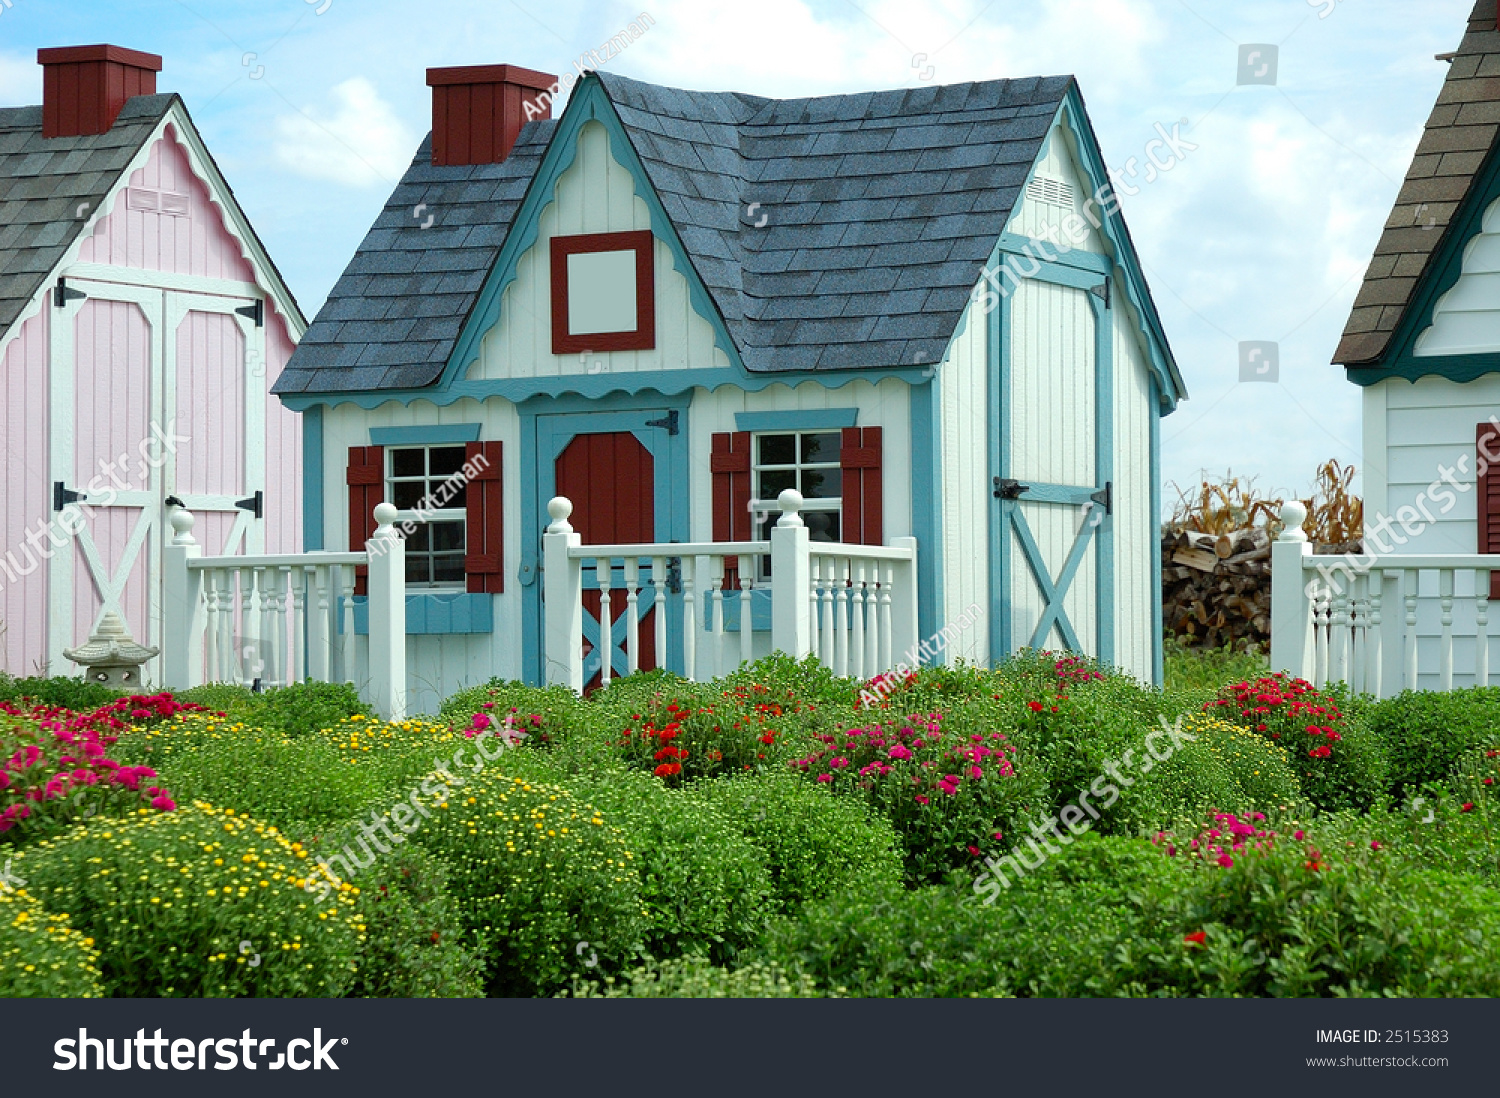 Garden Sheds That Look Like Houses gingerbread houses row row small storage stock photo 2515383